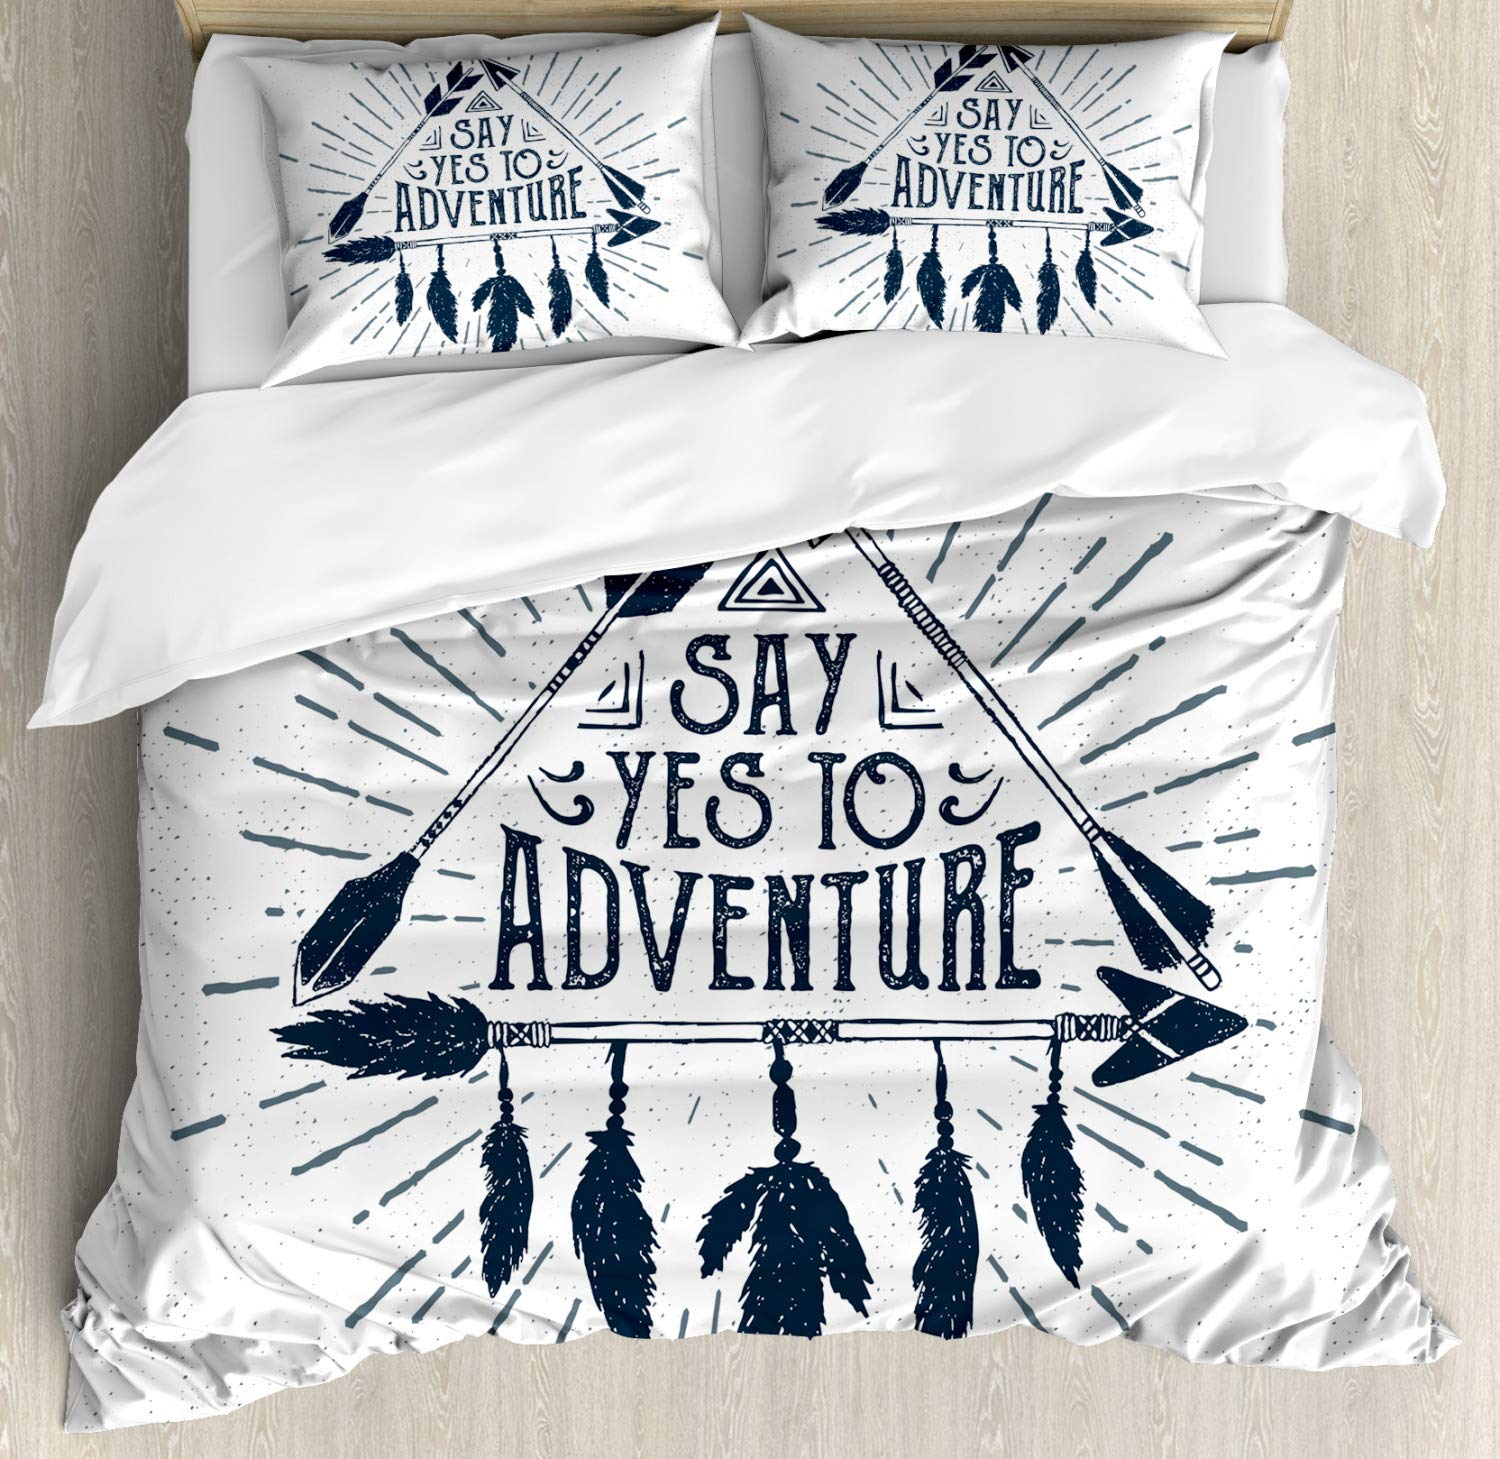 Indigo Ambesonne Adventure Duvet Cover Set Twin Size Adventure in Hand Drawn Tribal Frame with Arrows and Feathers Ethnic Artwork Decorative 2 Piece Bedding Set with 1 Pillow Sham